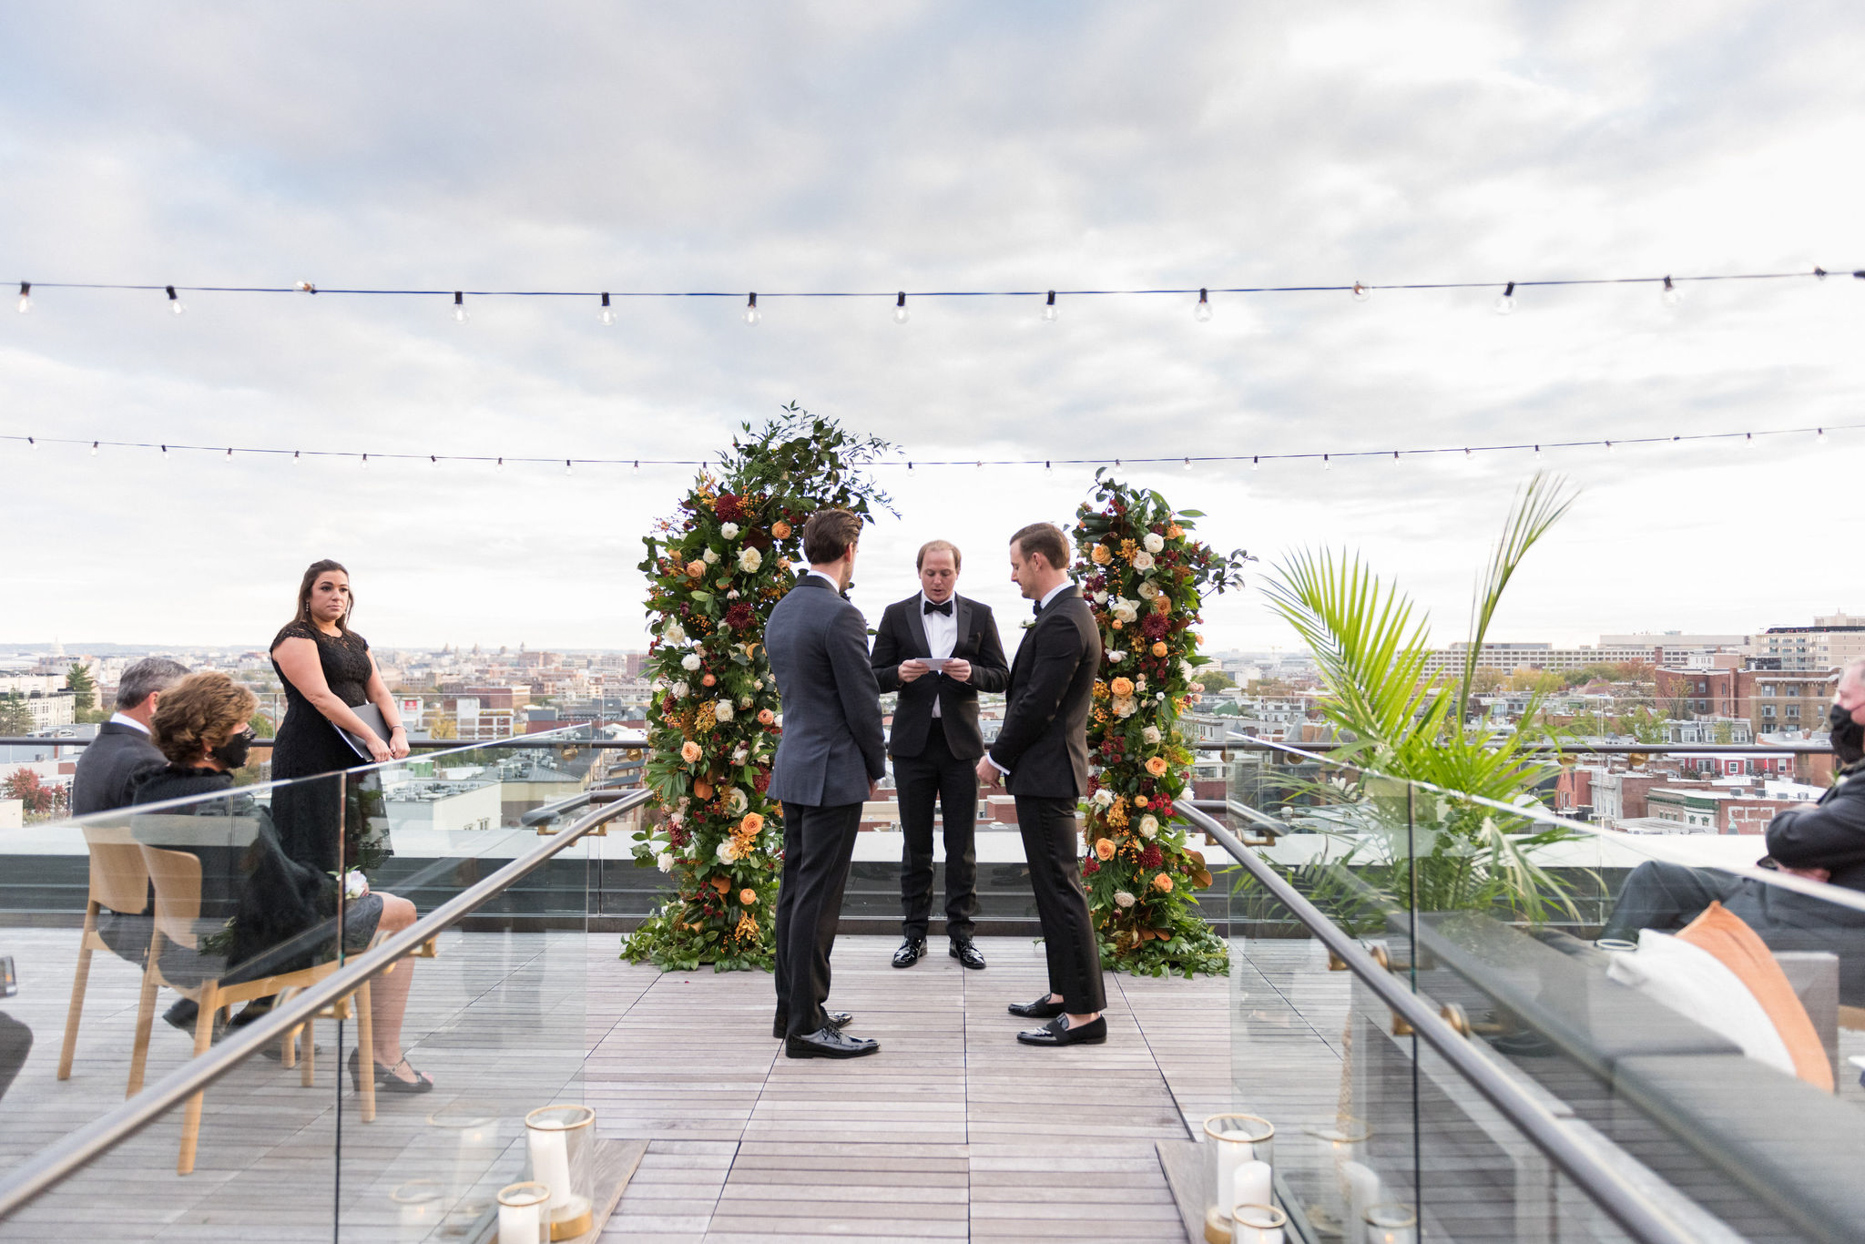 rooftop wedding ceremony with city view